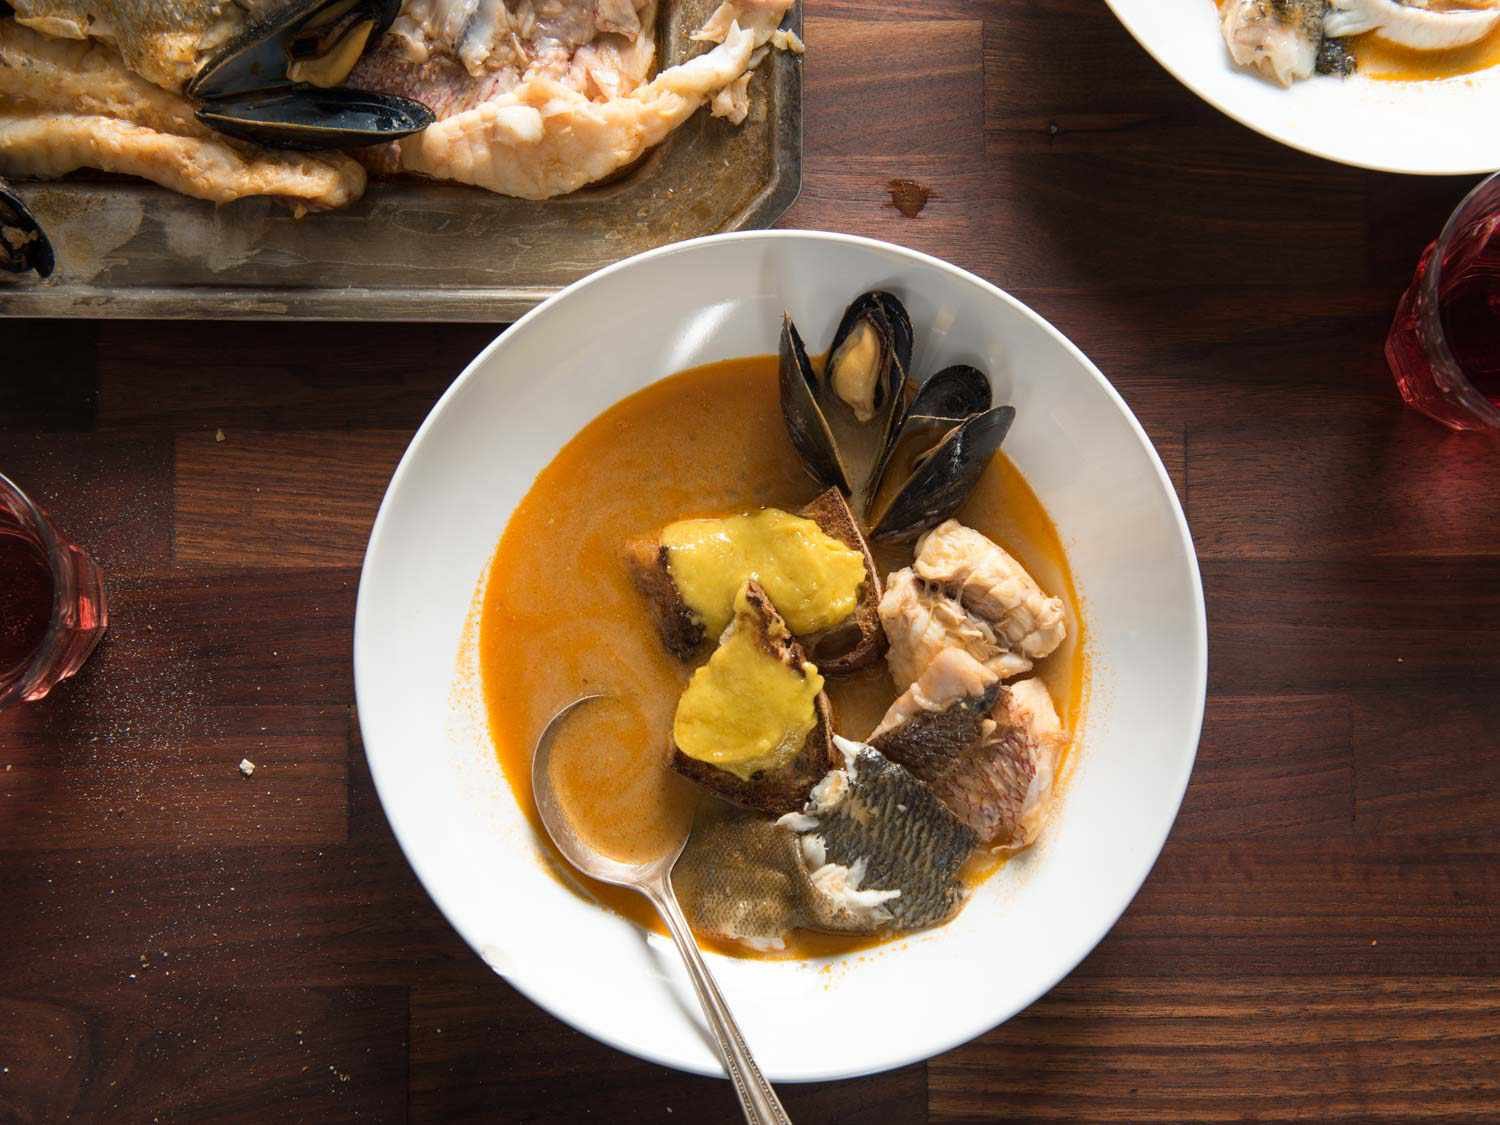 A bowl of bouillabaisse, a French seafood soup.